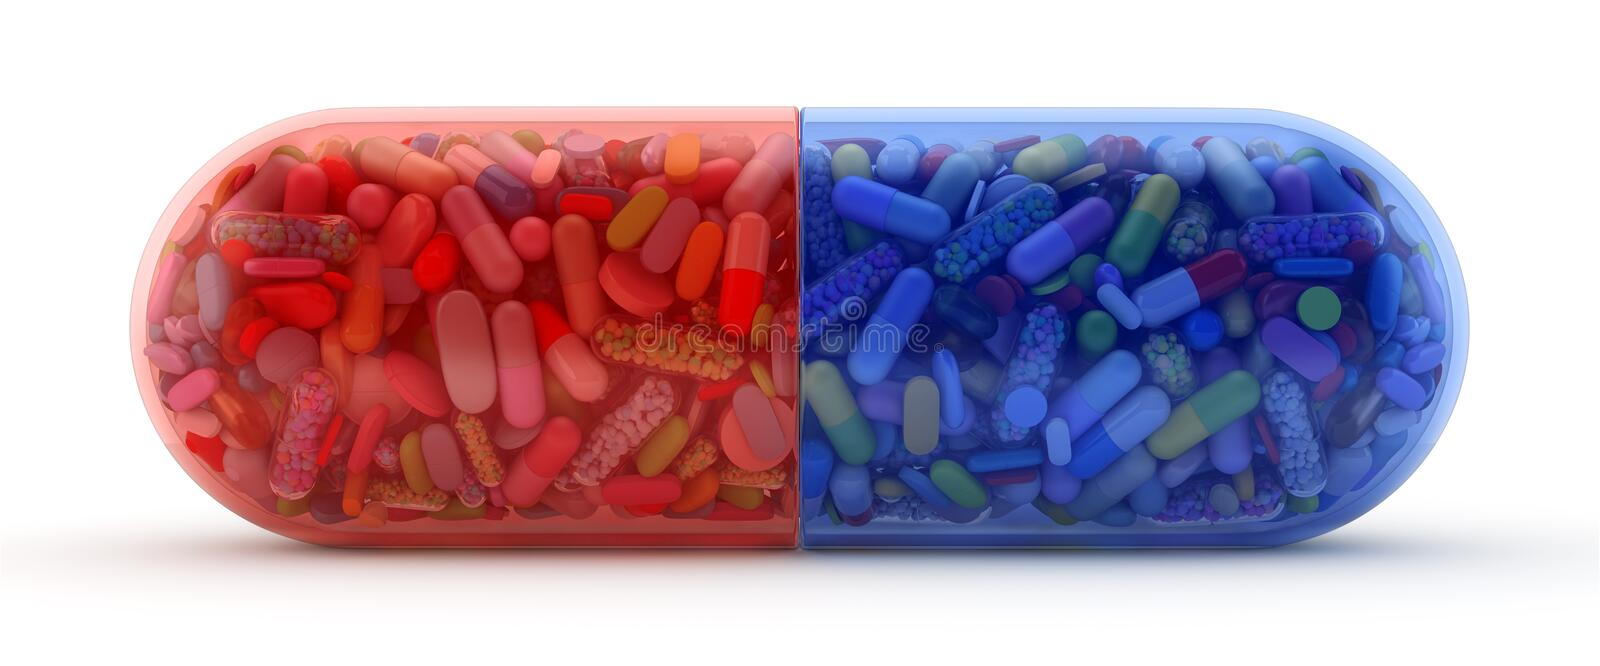 Large red and blue pill filled with colorful pills stock illustration